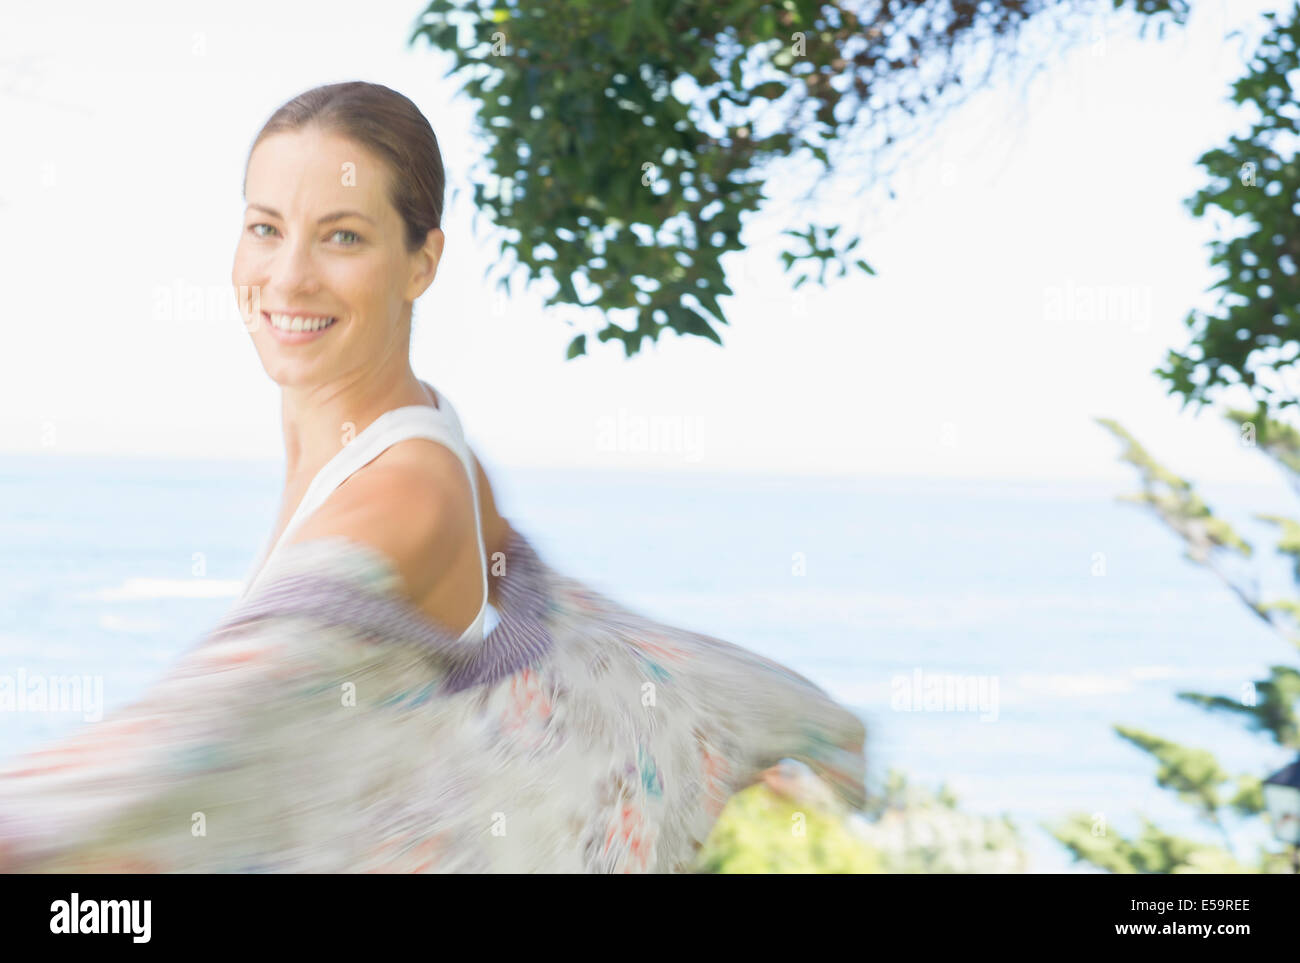 Blurred view of woman spinning outdoors - Stock Image